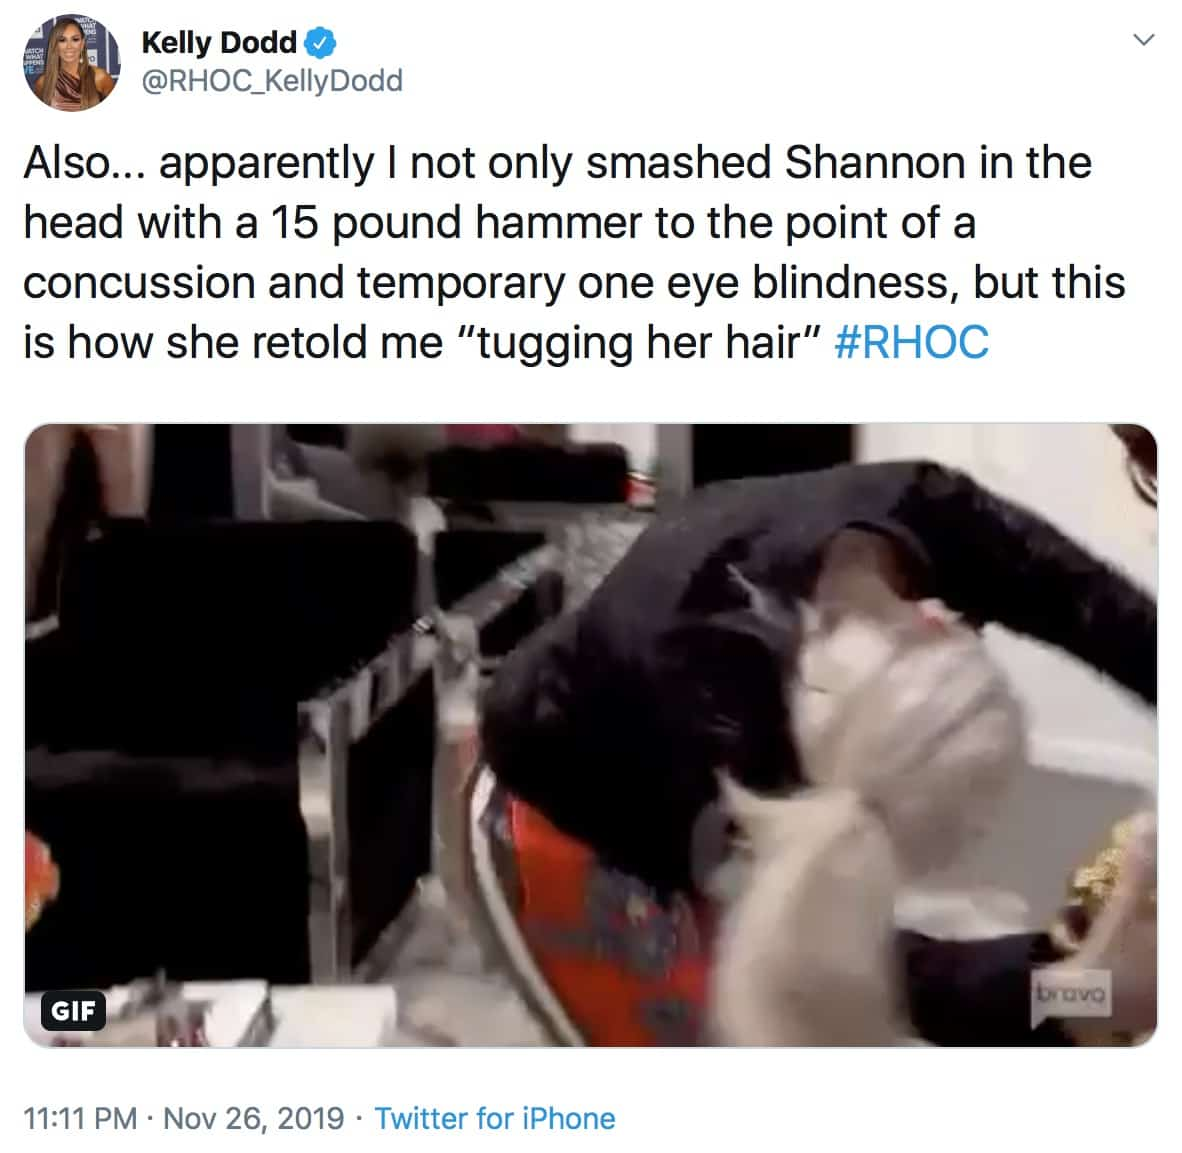 RHOC Kelly Dodd Pokes Fun at Shannon Beador's Assault Claims Against Her